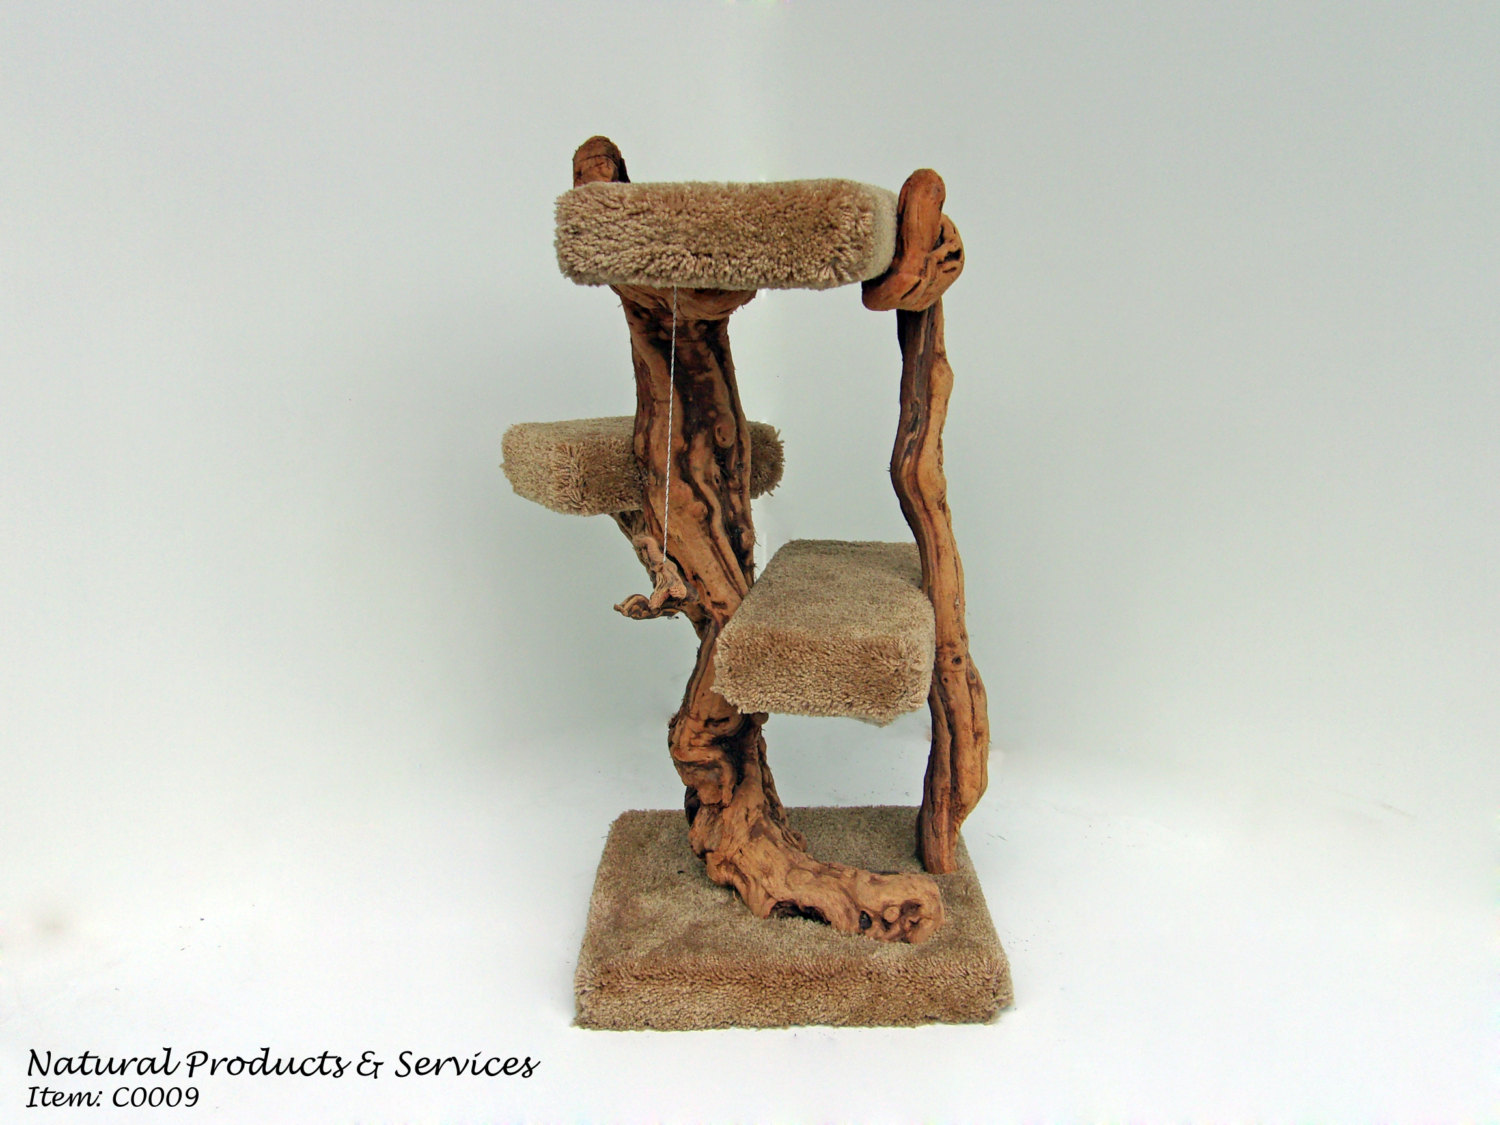 Order California Grapewood And Driftwood Handmade Grapevine Cat Scratcher Tree Driftwood